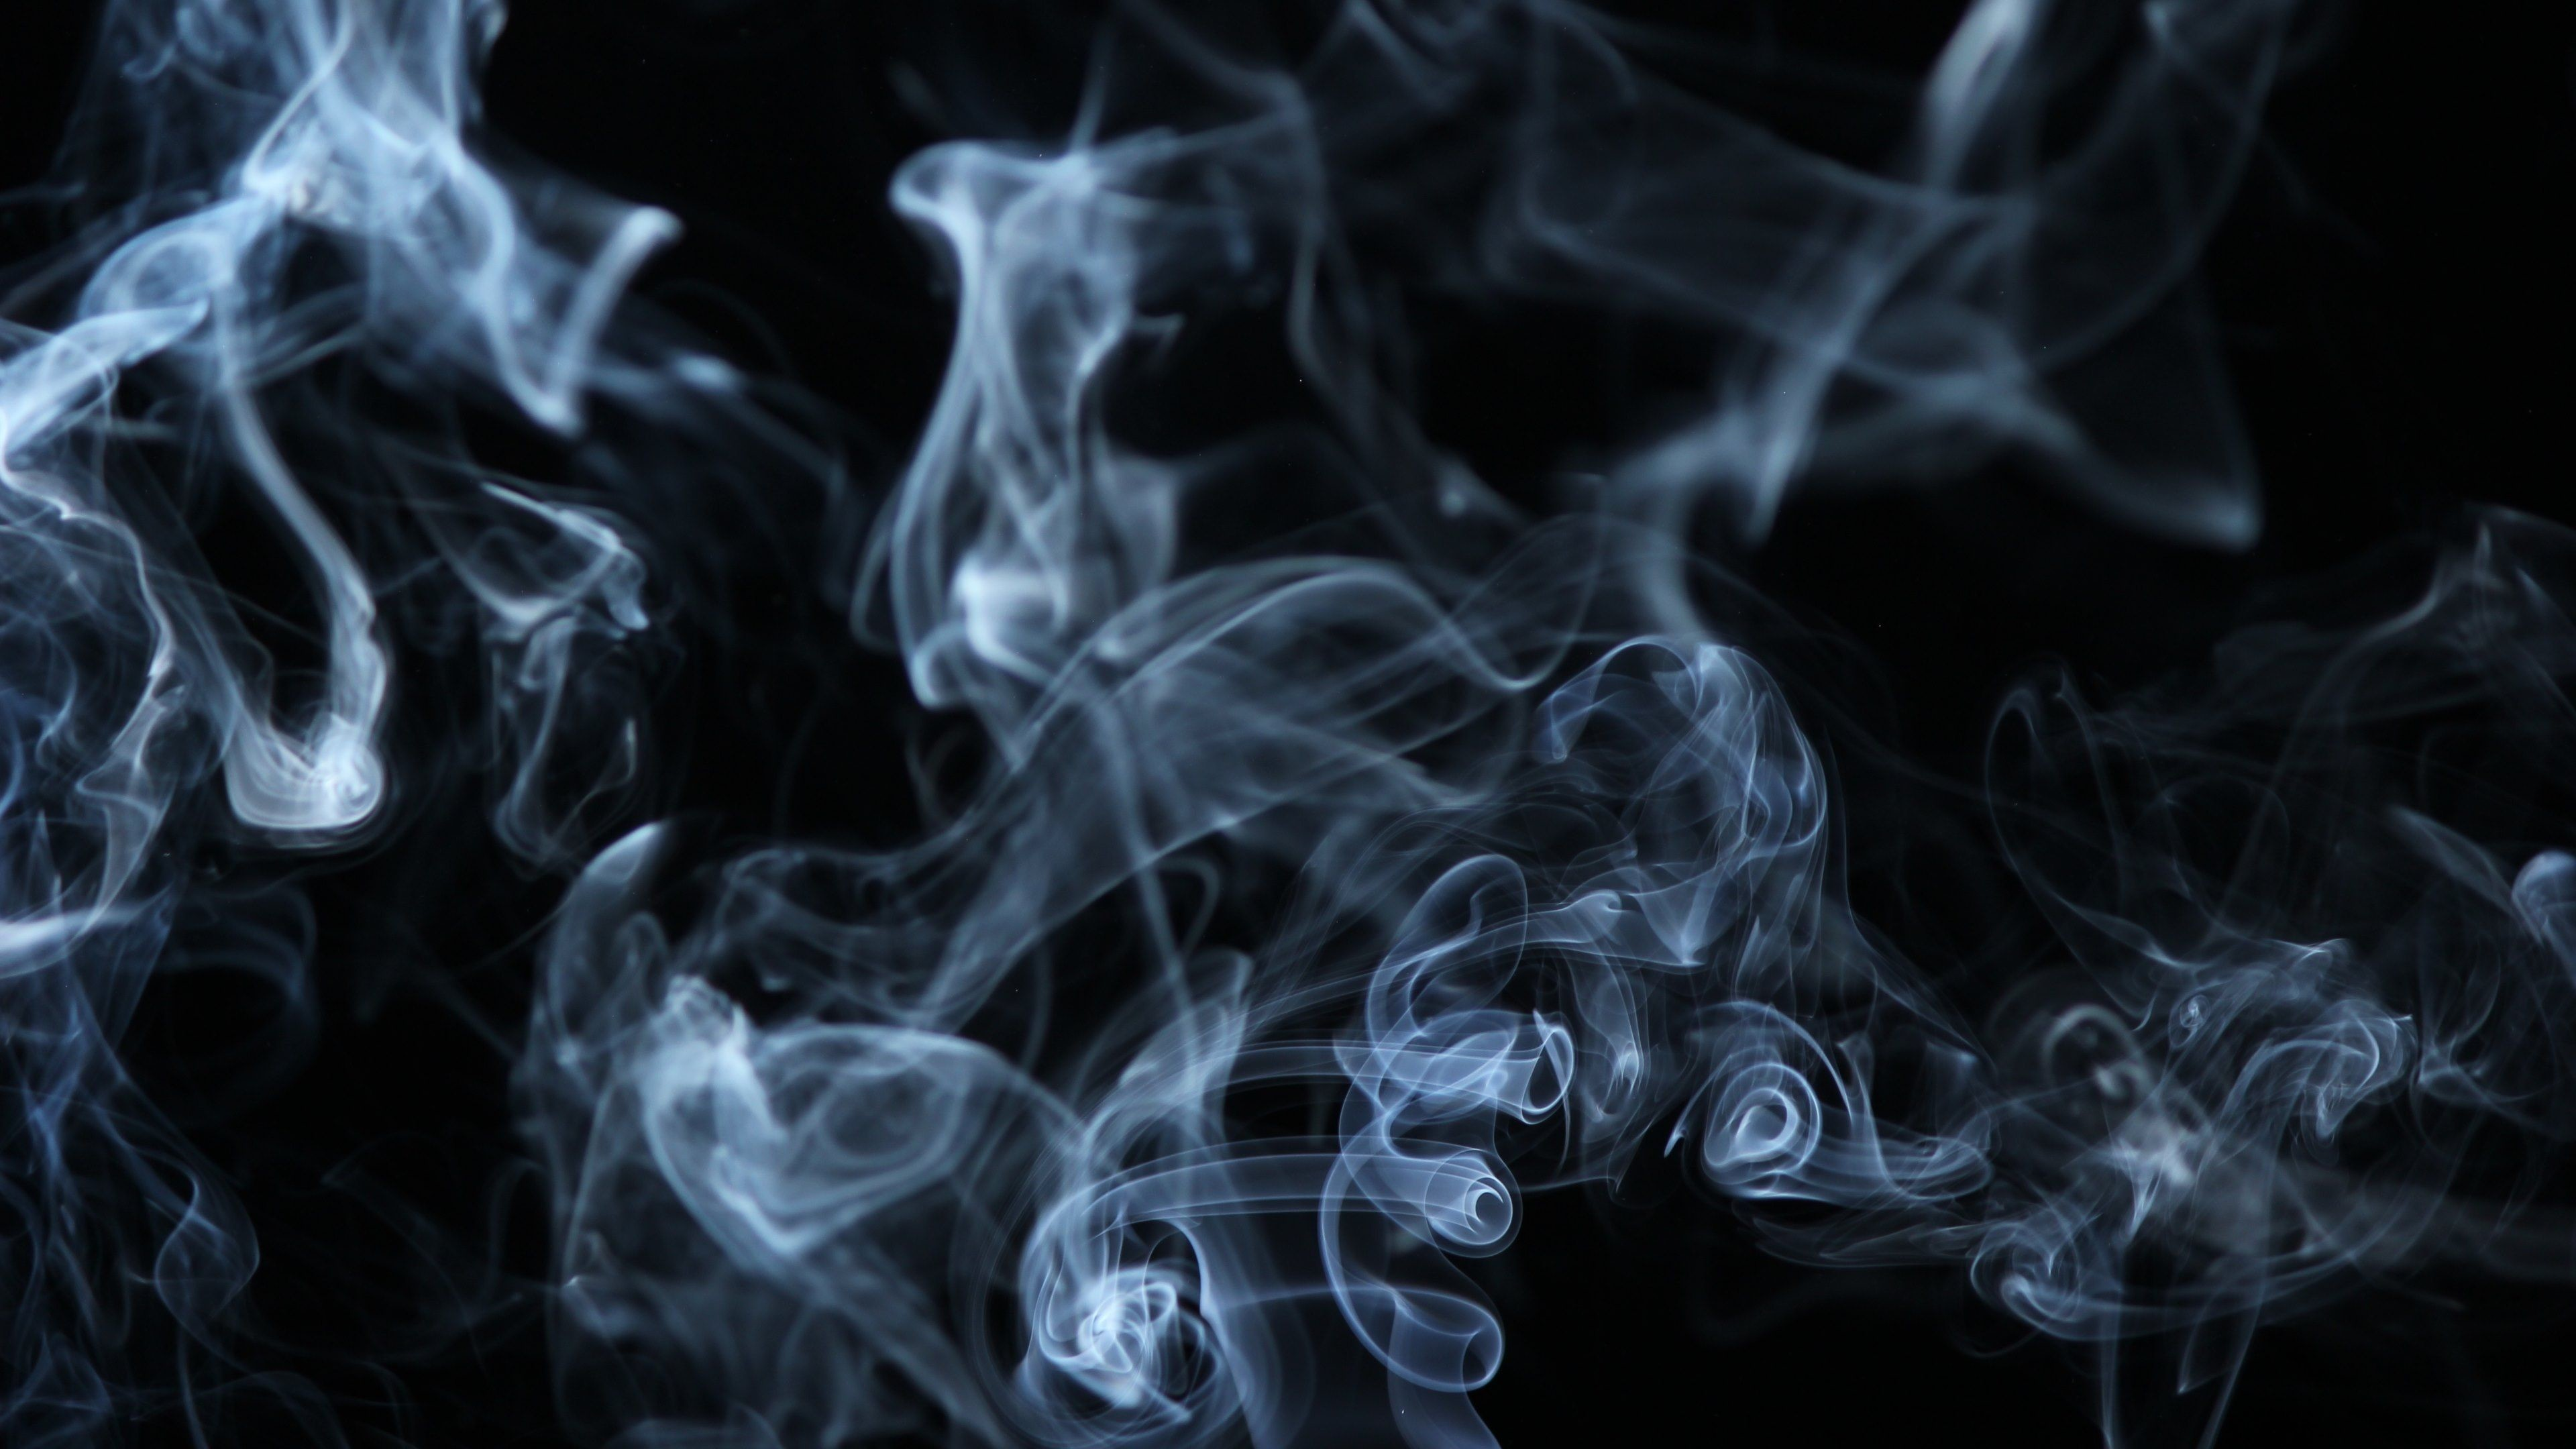 Smoke on black background Wallpapers :: HD Wallpapers